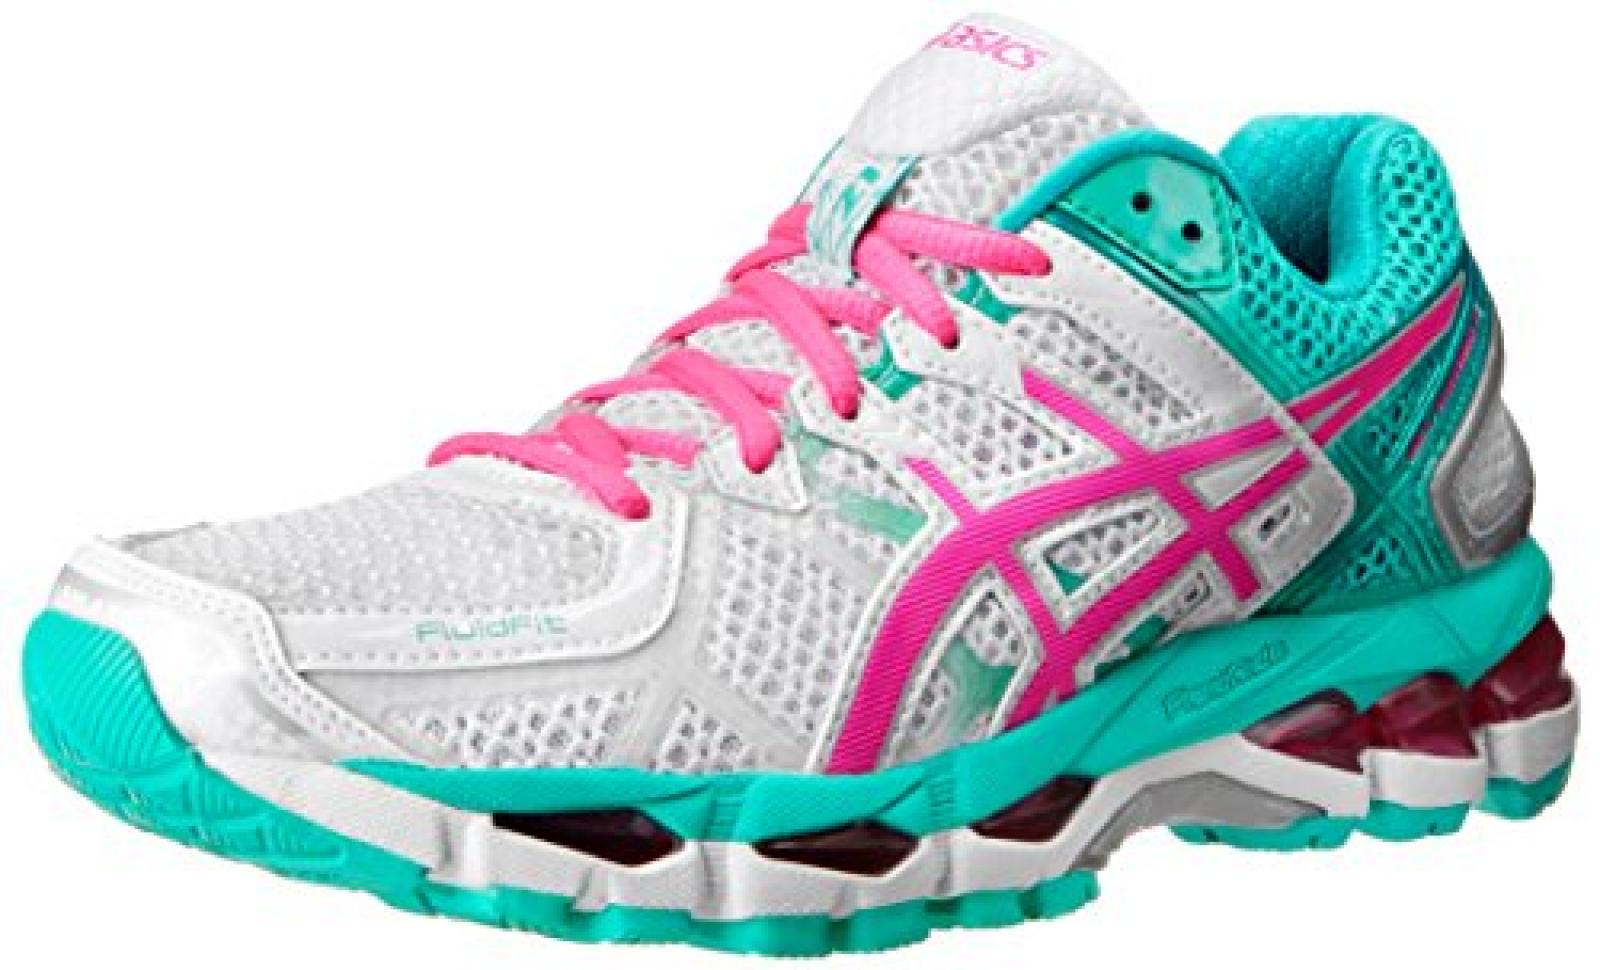 Asics - Frauen-Gel-Kayano 21 Schuhe, EUR: 35.5, White/Hot Pink/Emerald